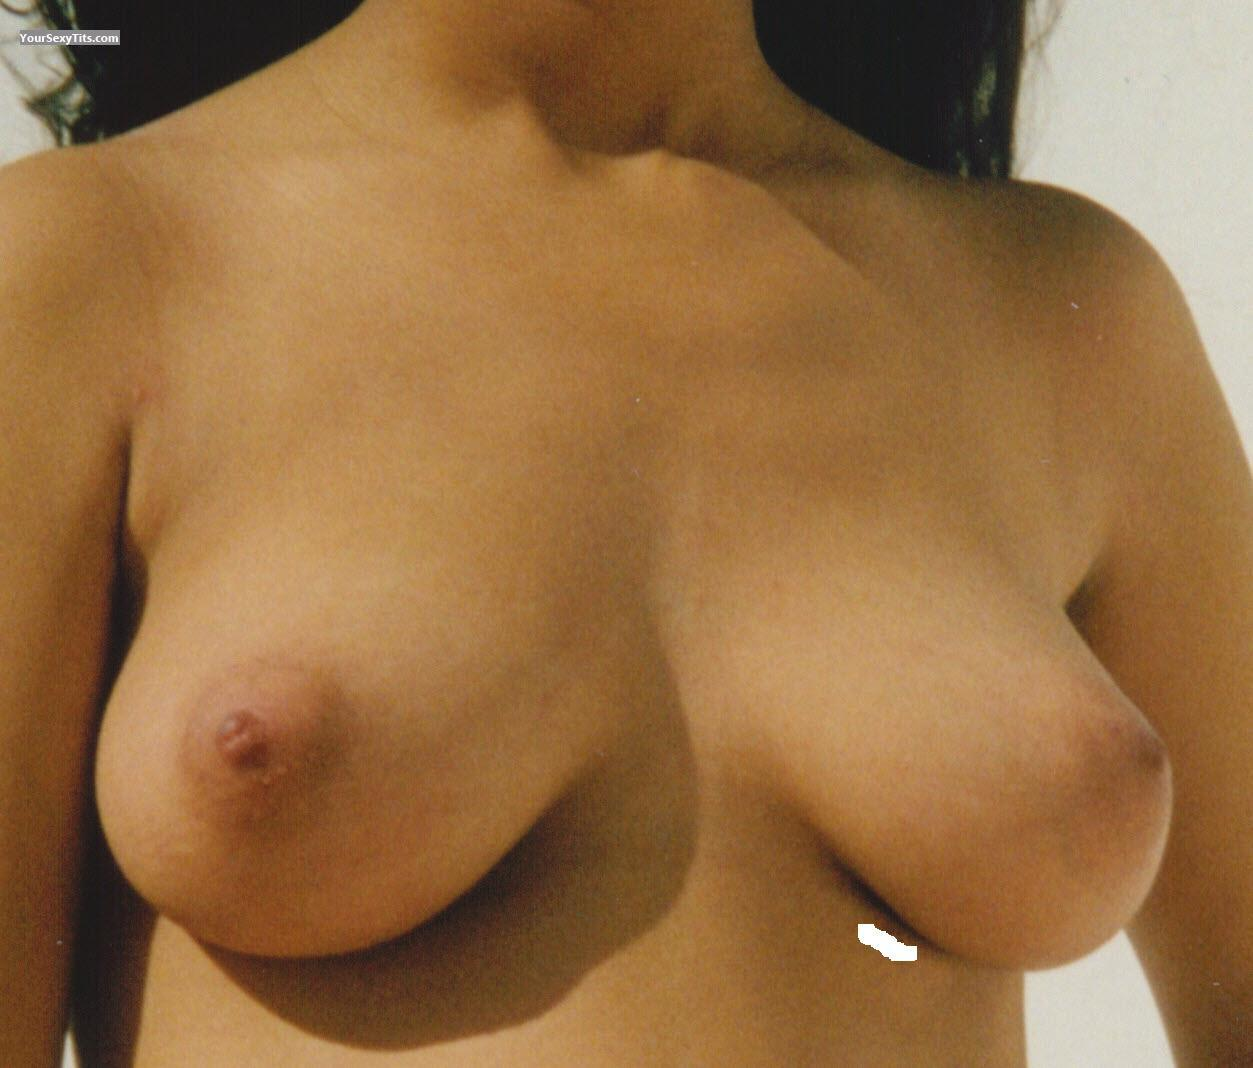 Medium Tits Hi